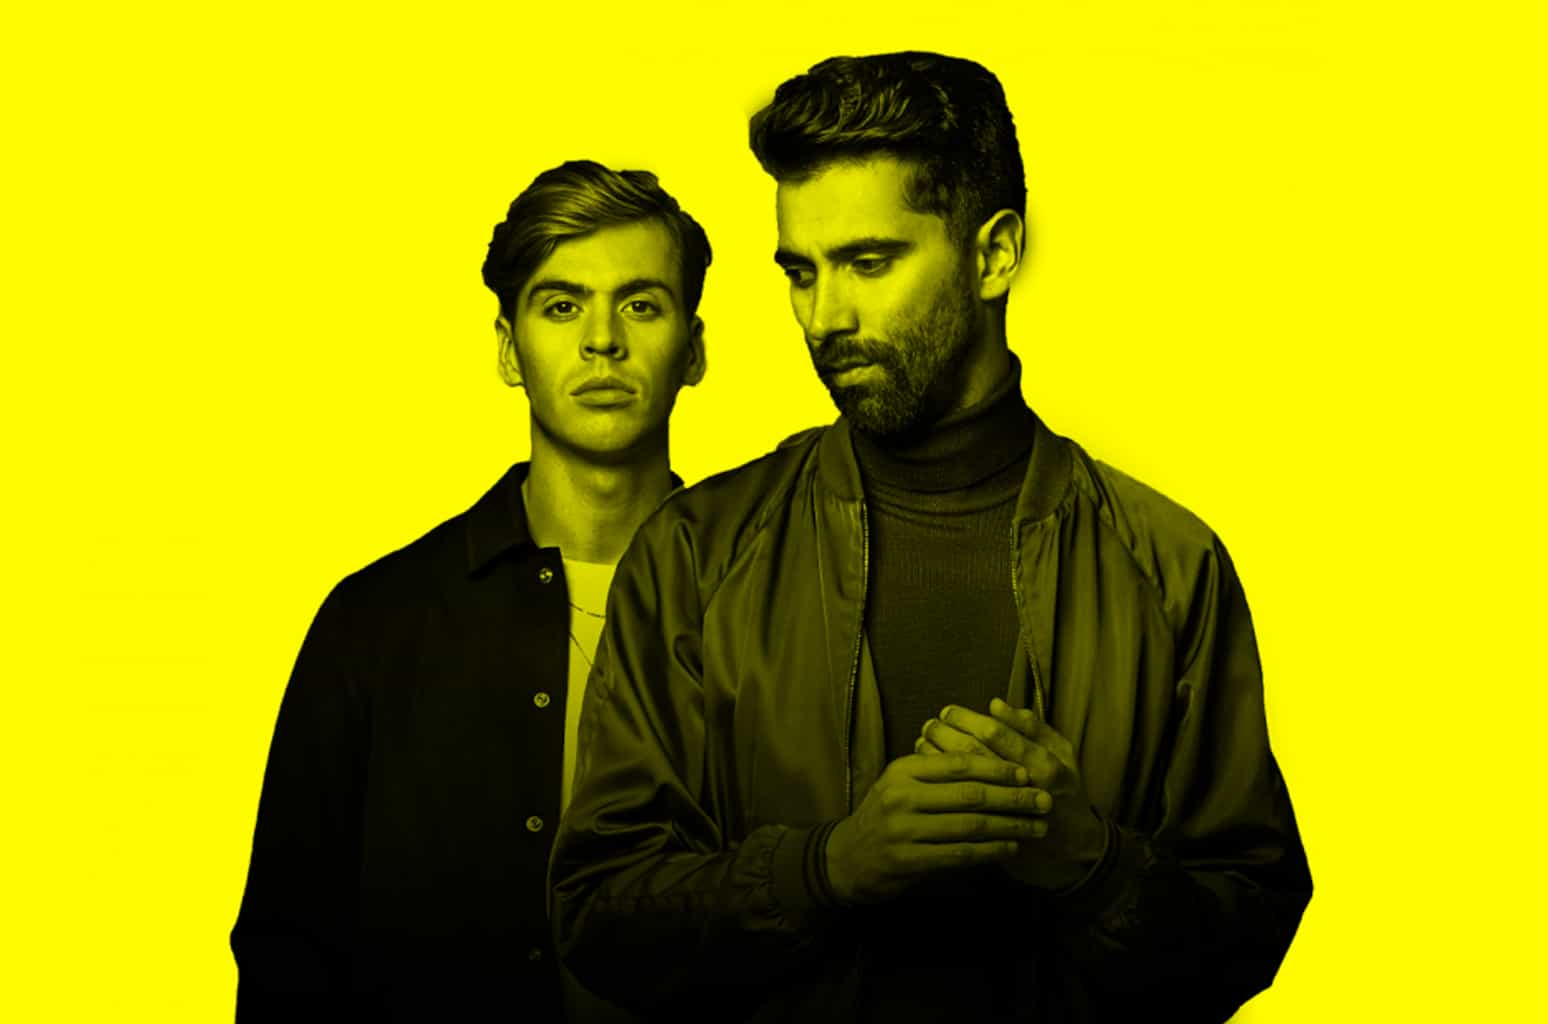 YELLOW CLAW – KNOW WHO WE ARE